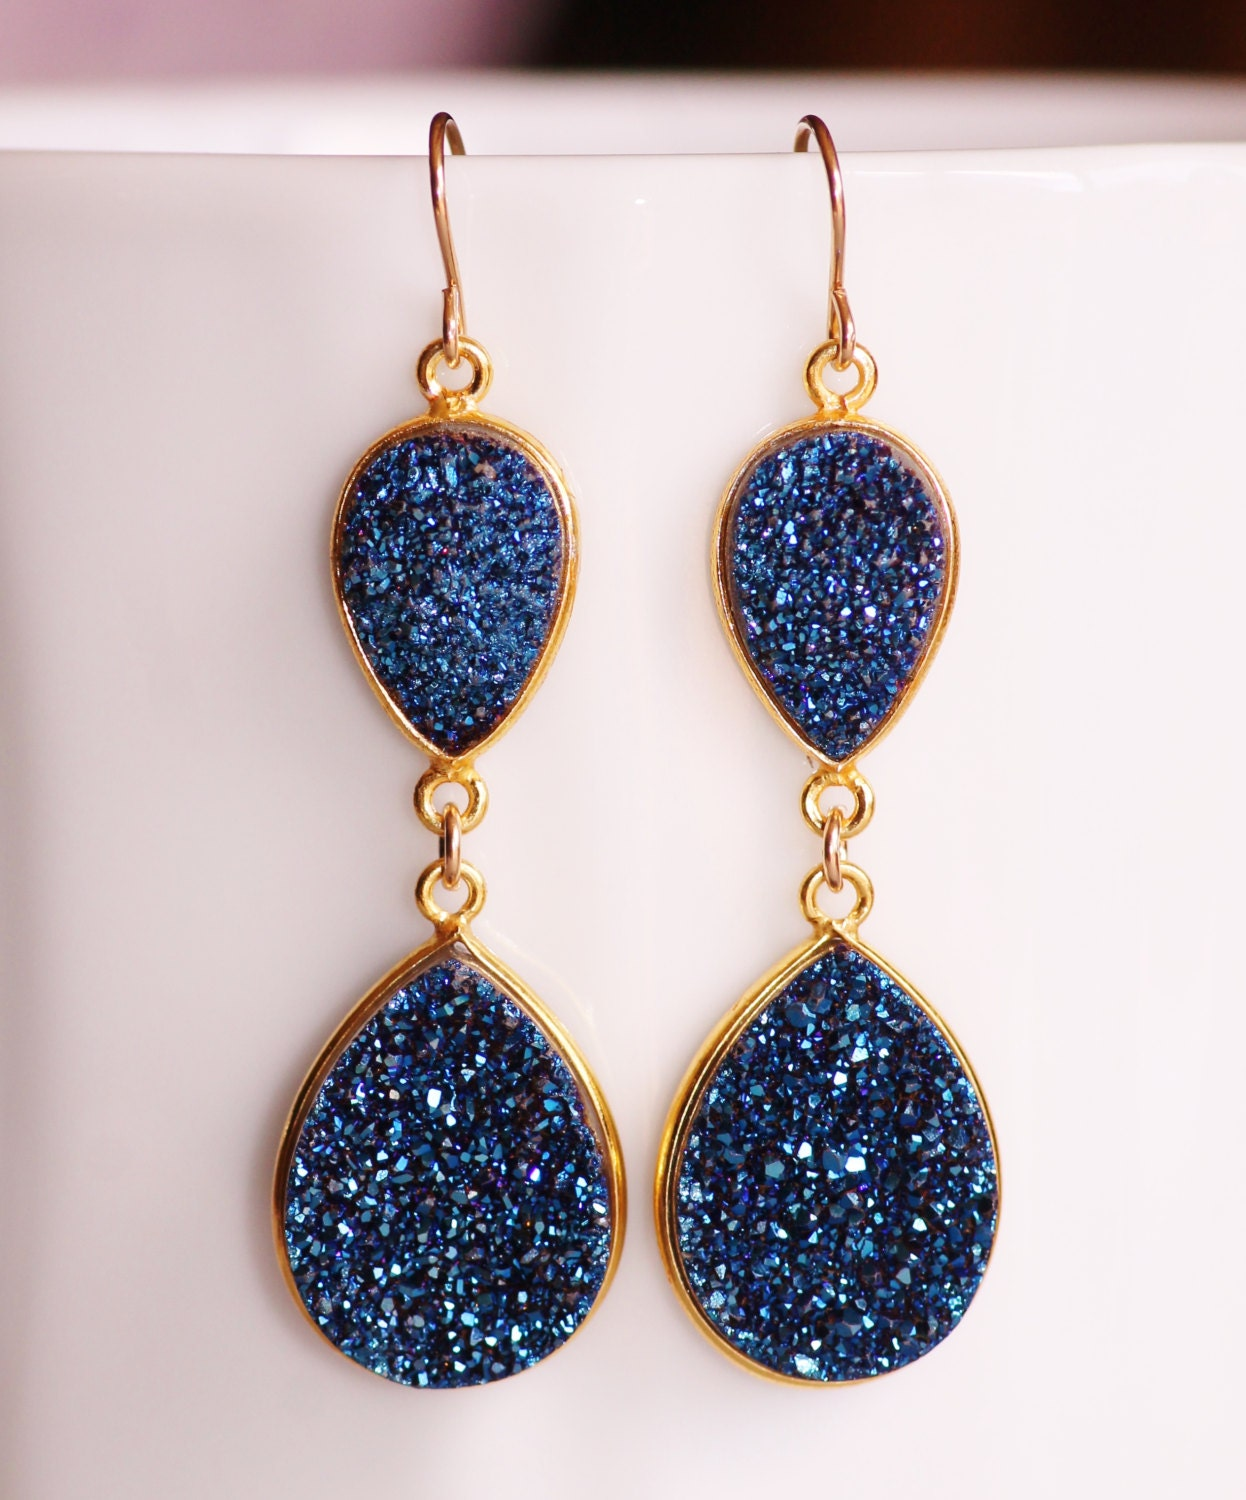 shop products img blue collections earrings royal drop jewelry tangerine gold gemstone